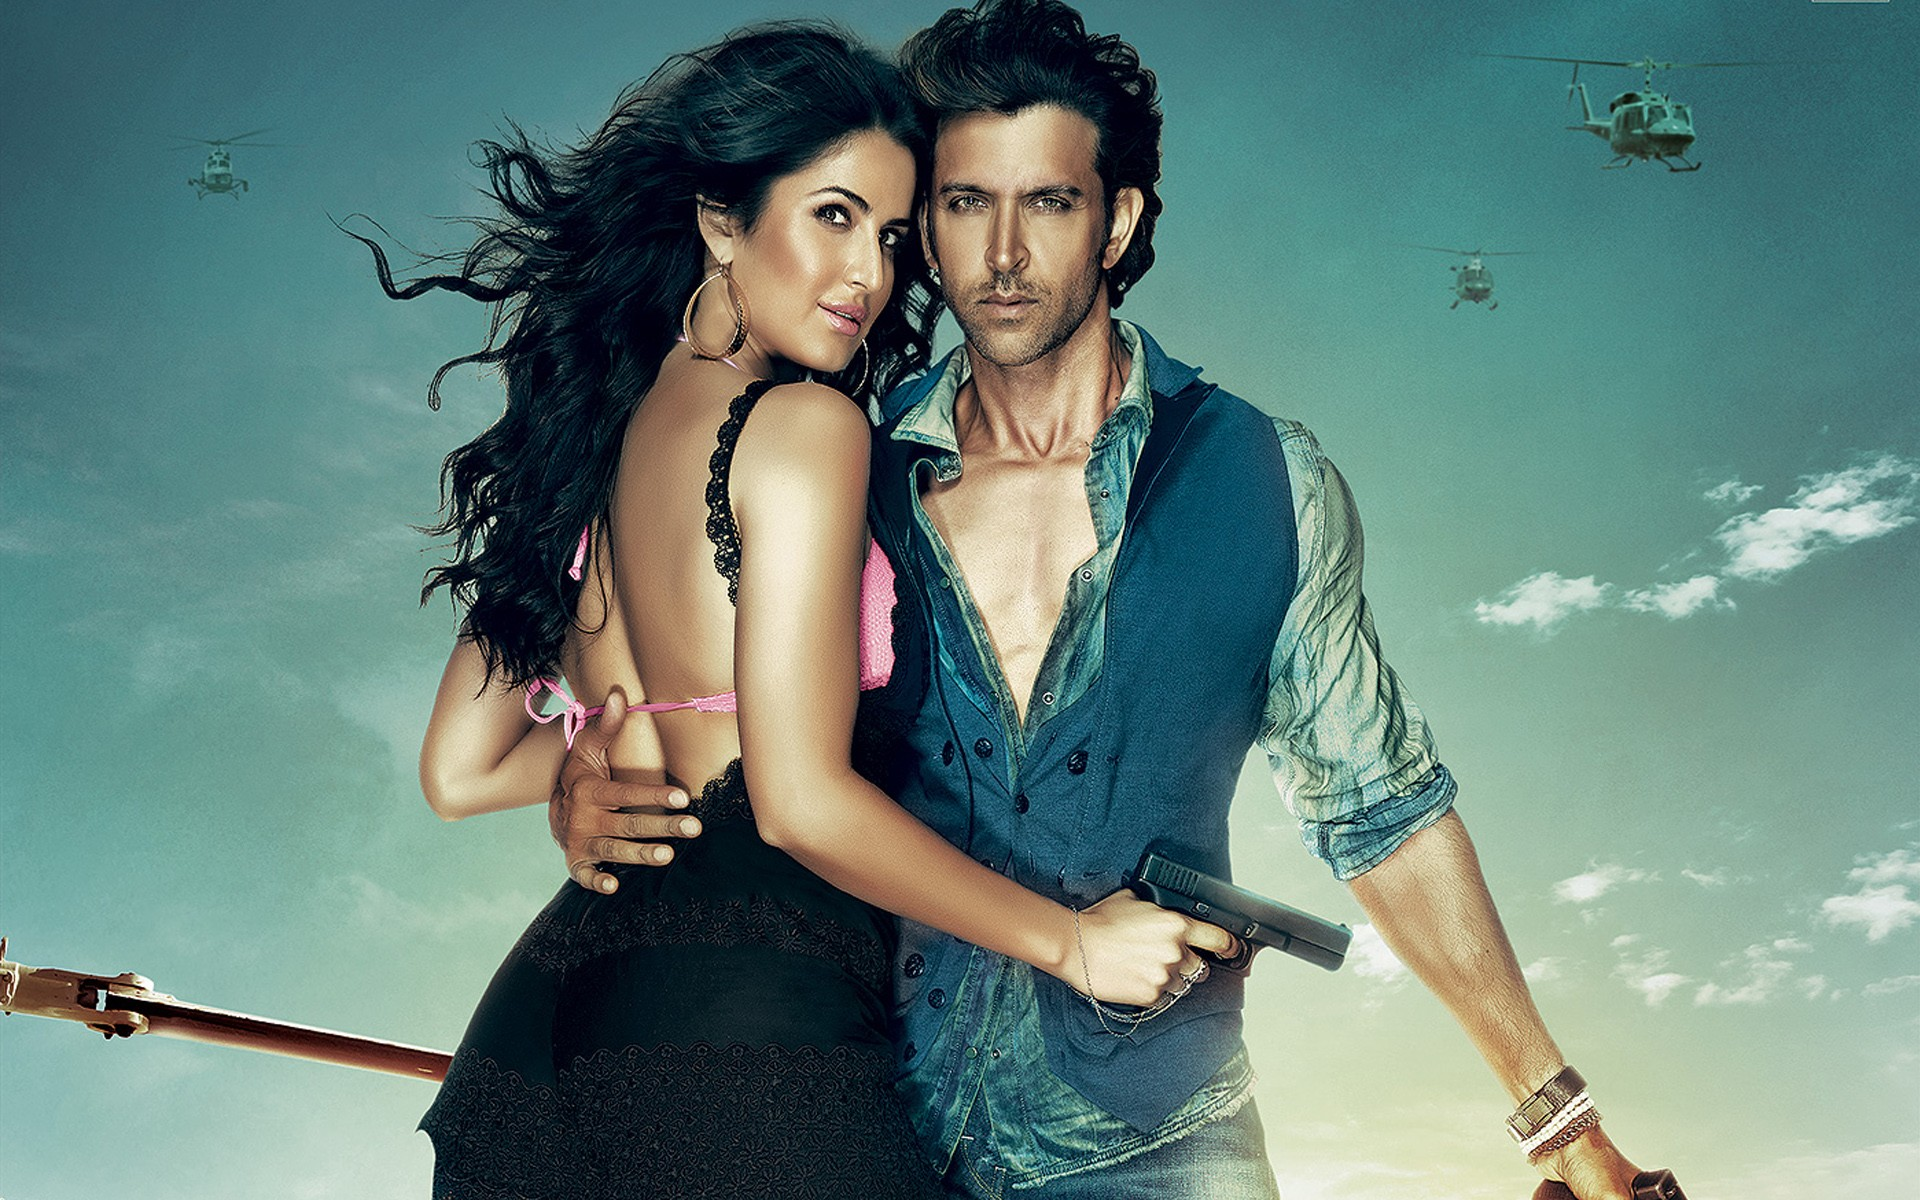 hrithik roshan and katrina kaif relationship goals